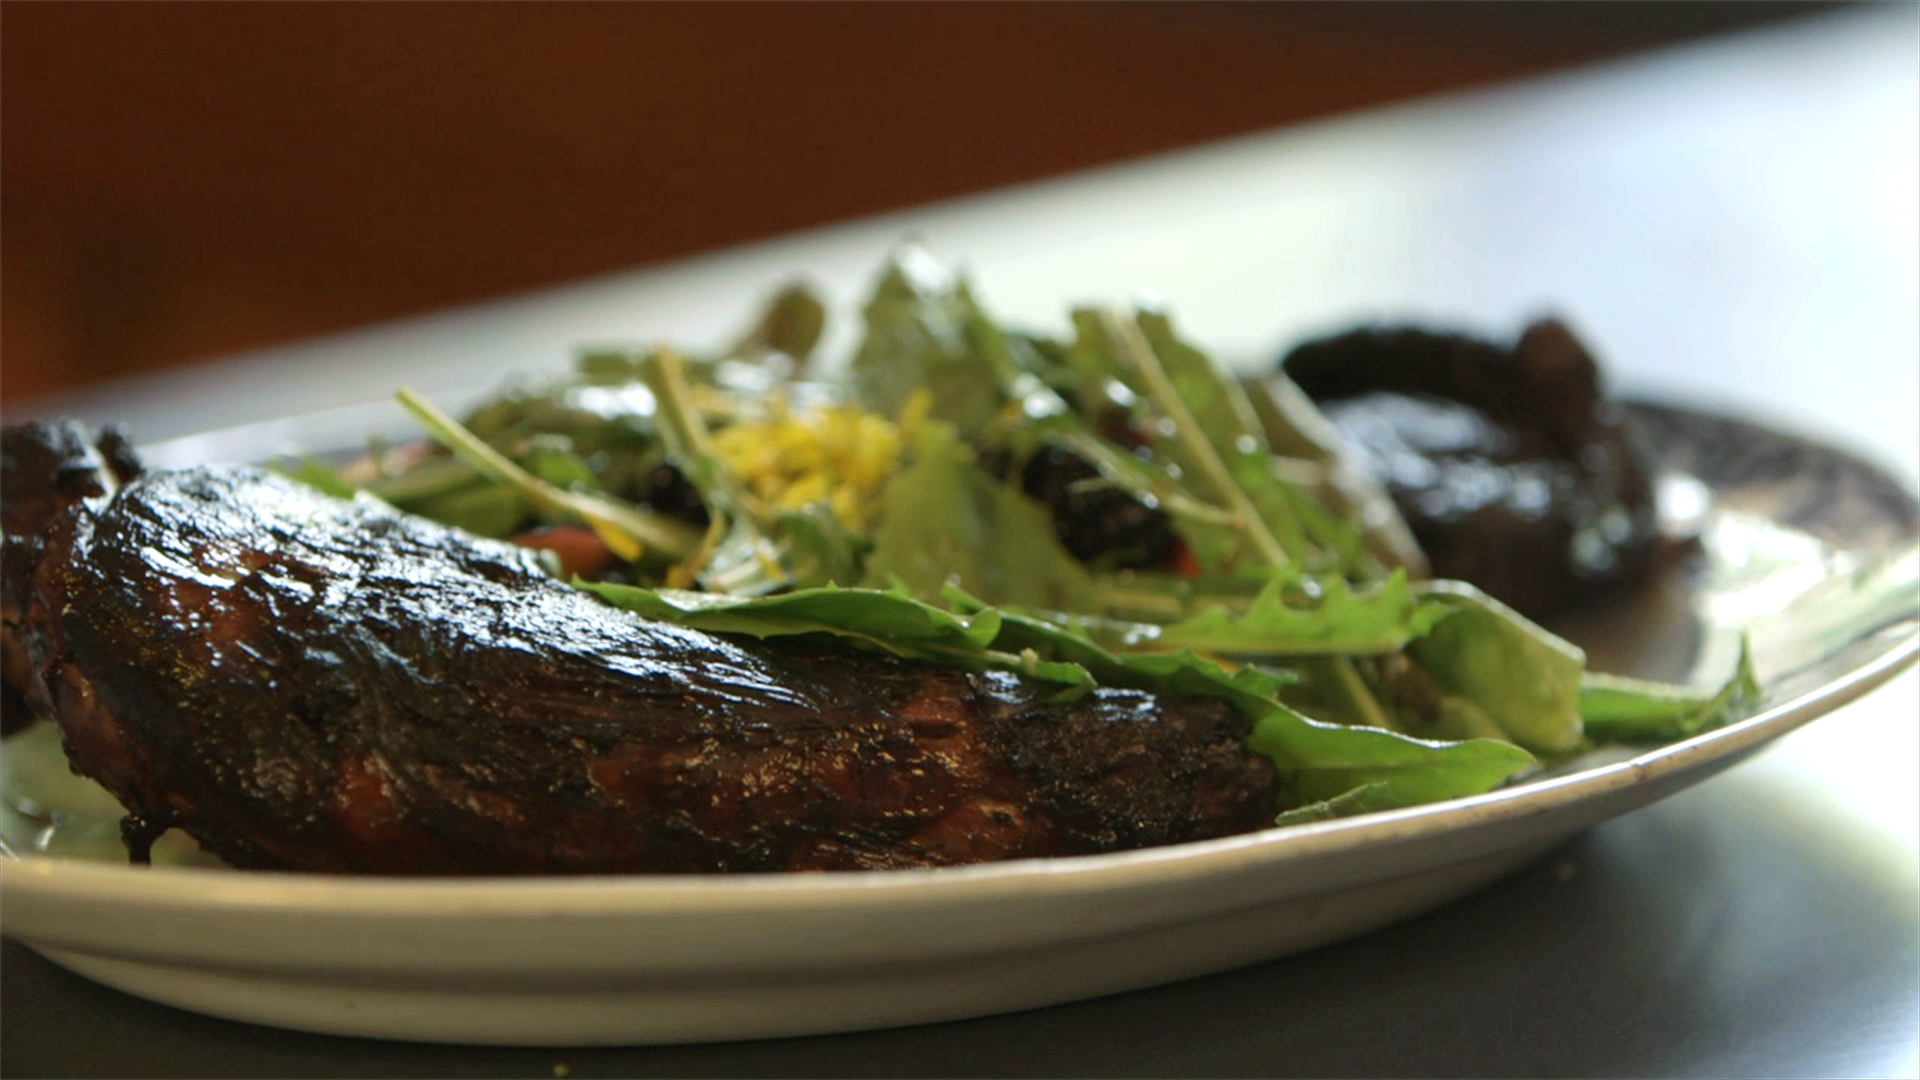 Blackened Porcupine with Wild Forest Salad